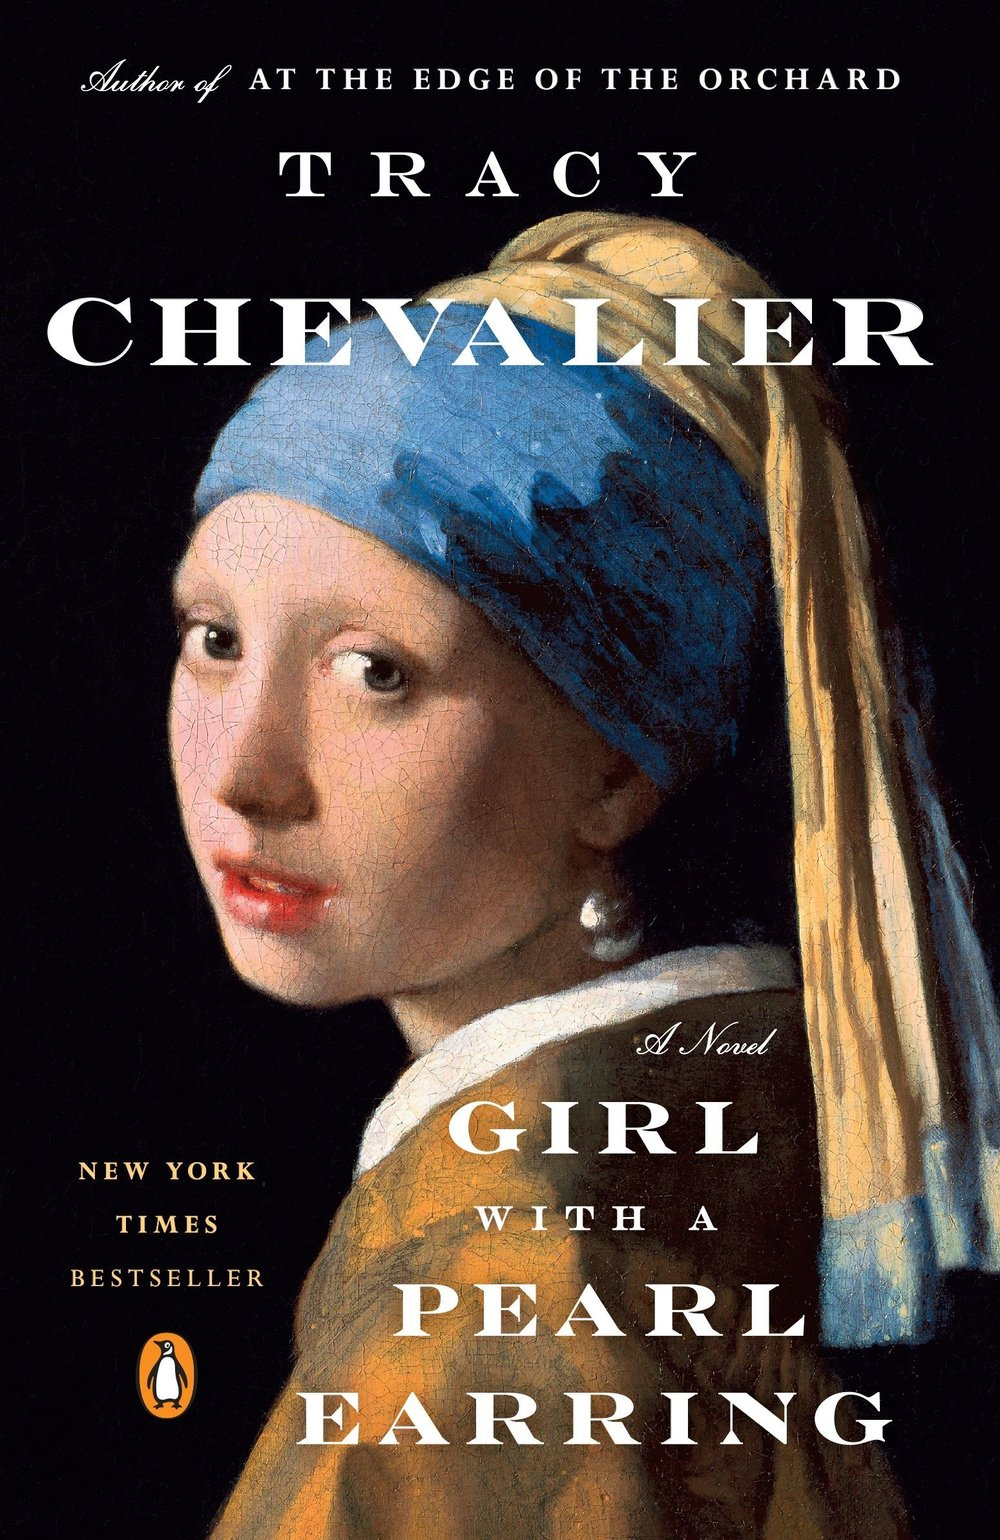 girl with a pearl earring by tracy chevalier.jpg